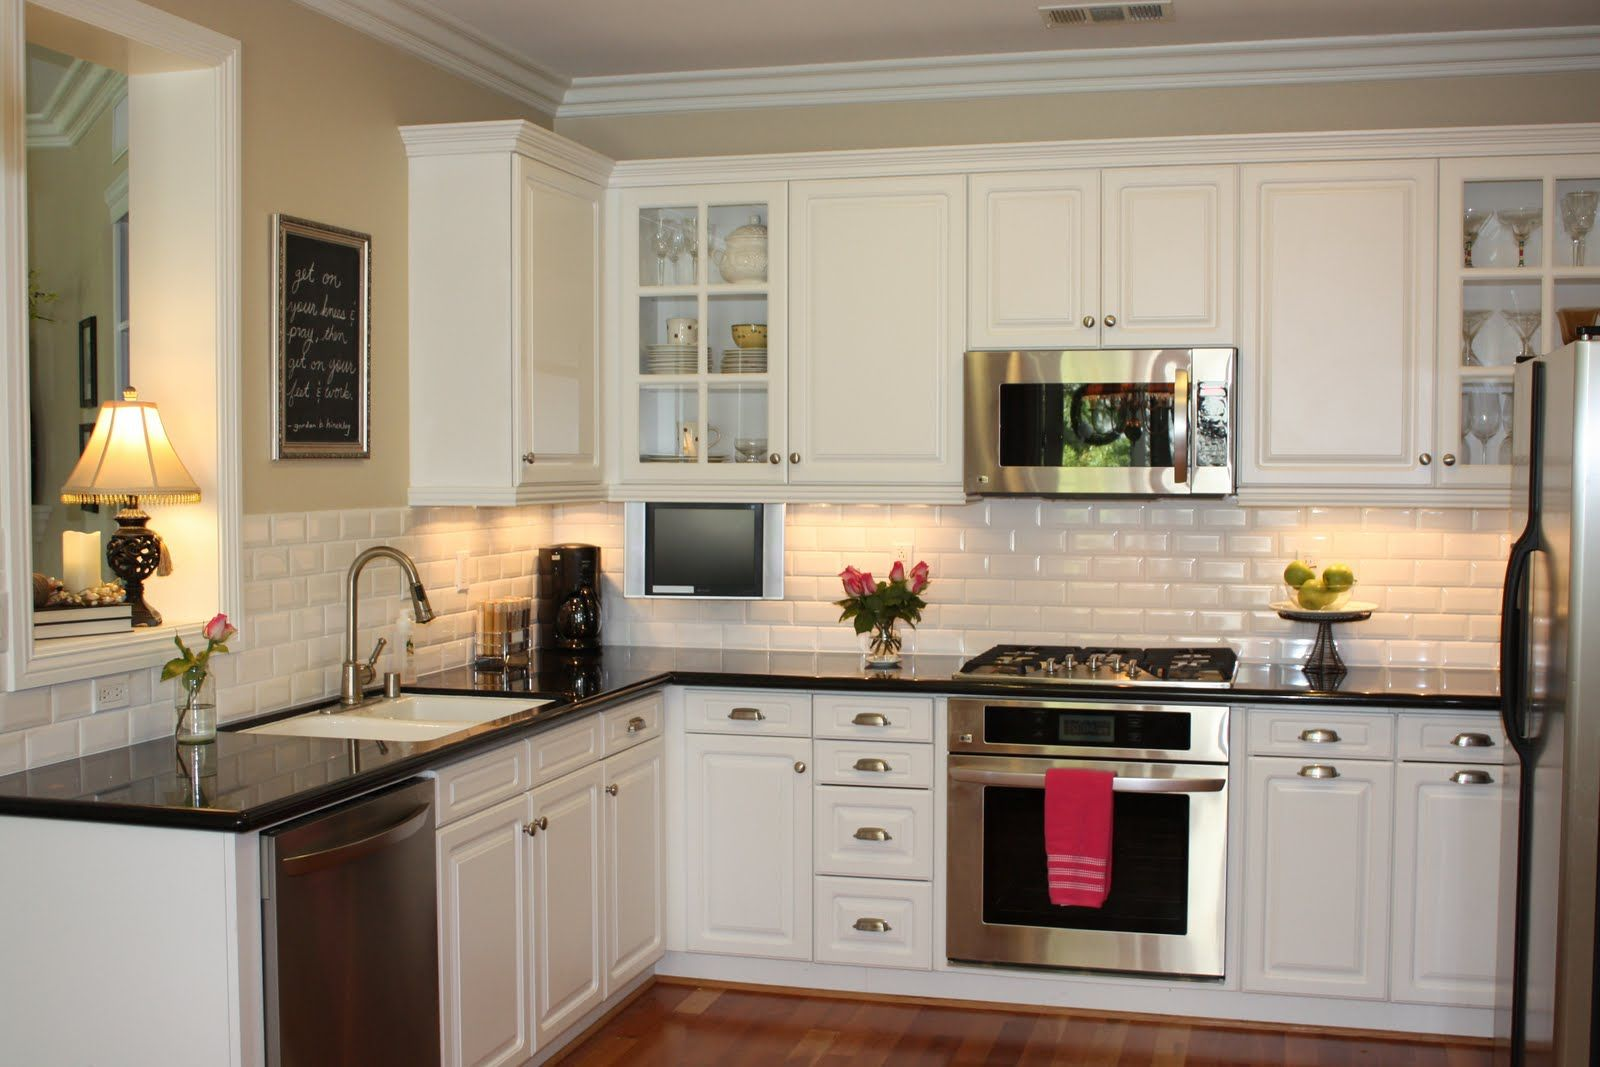 Pictures Of Kitchens With White Cabinets And Dark Countertops We